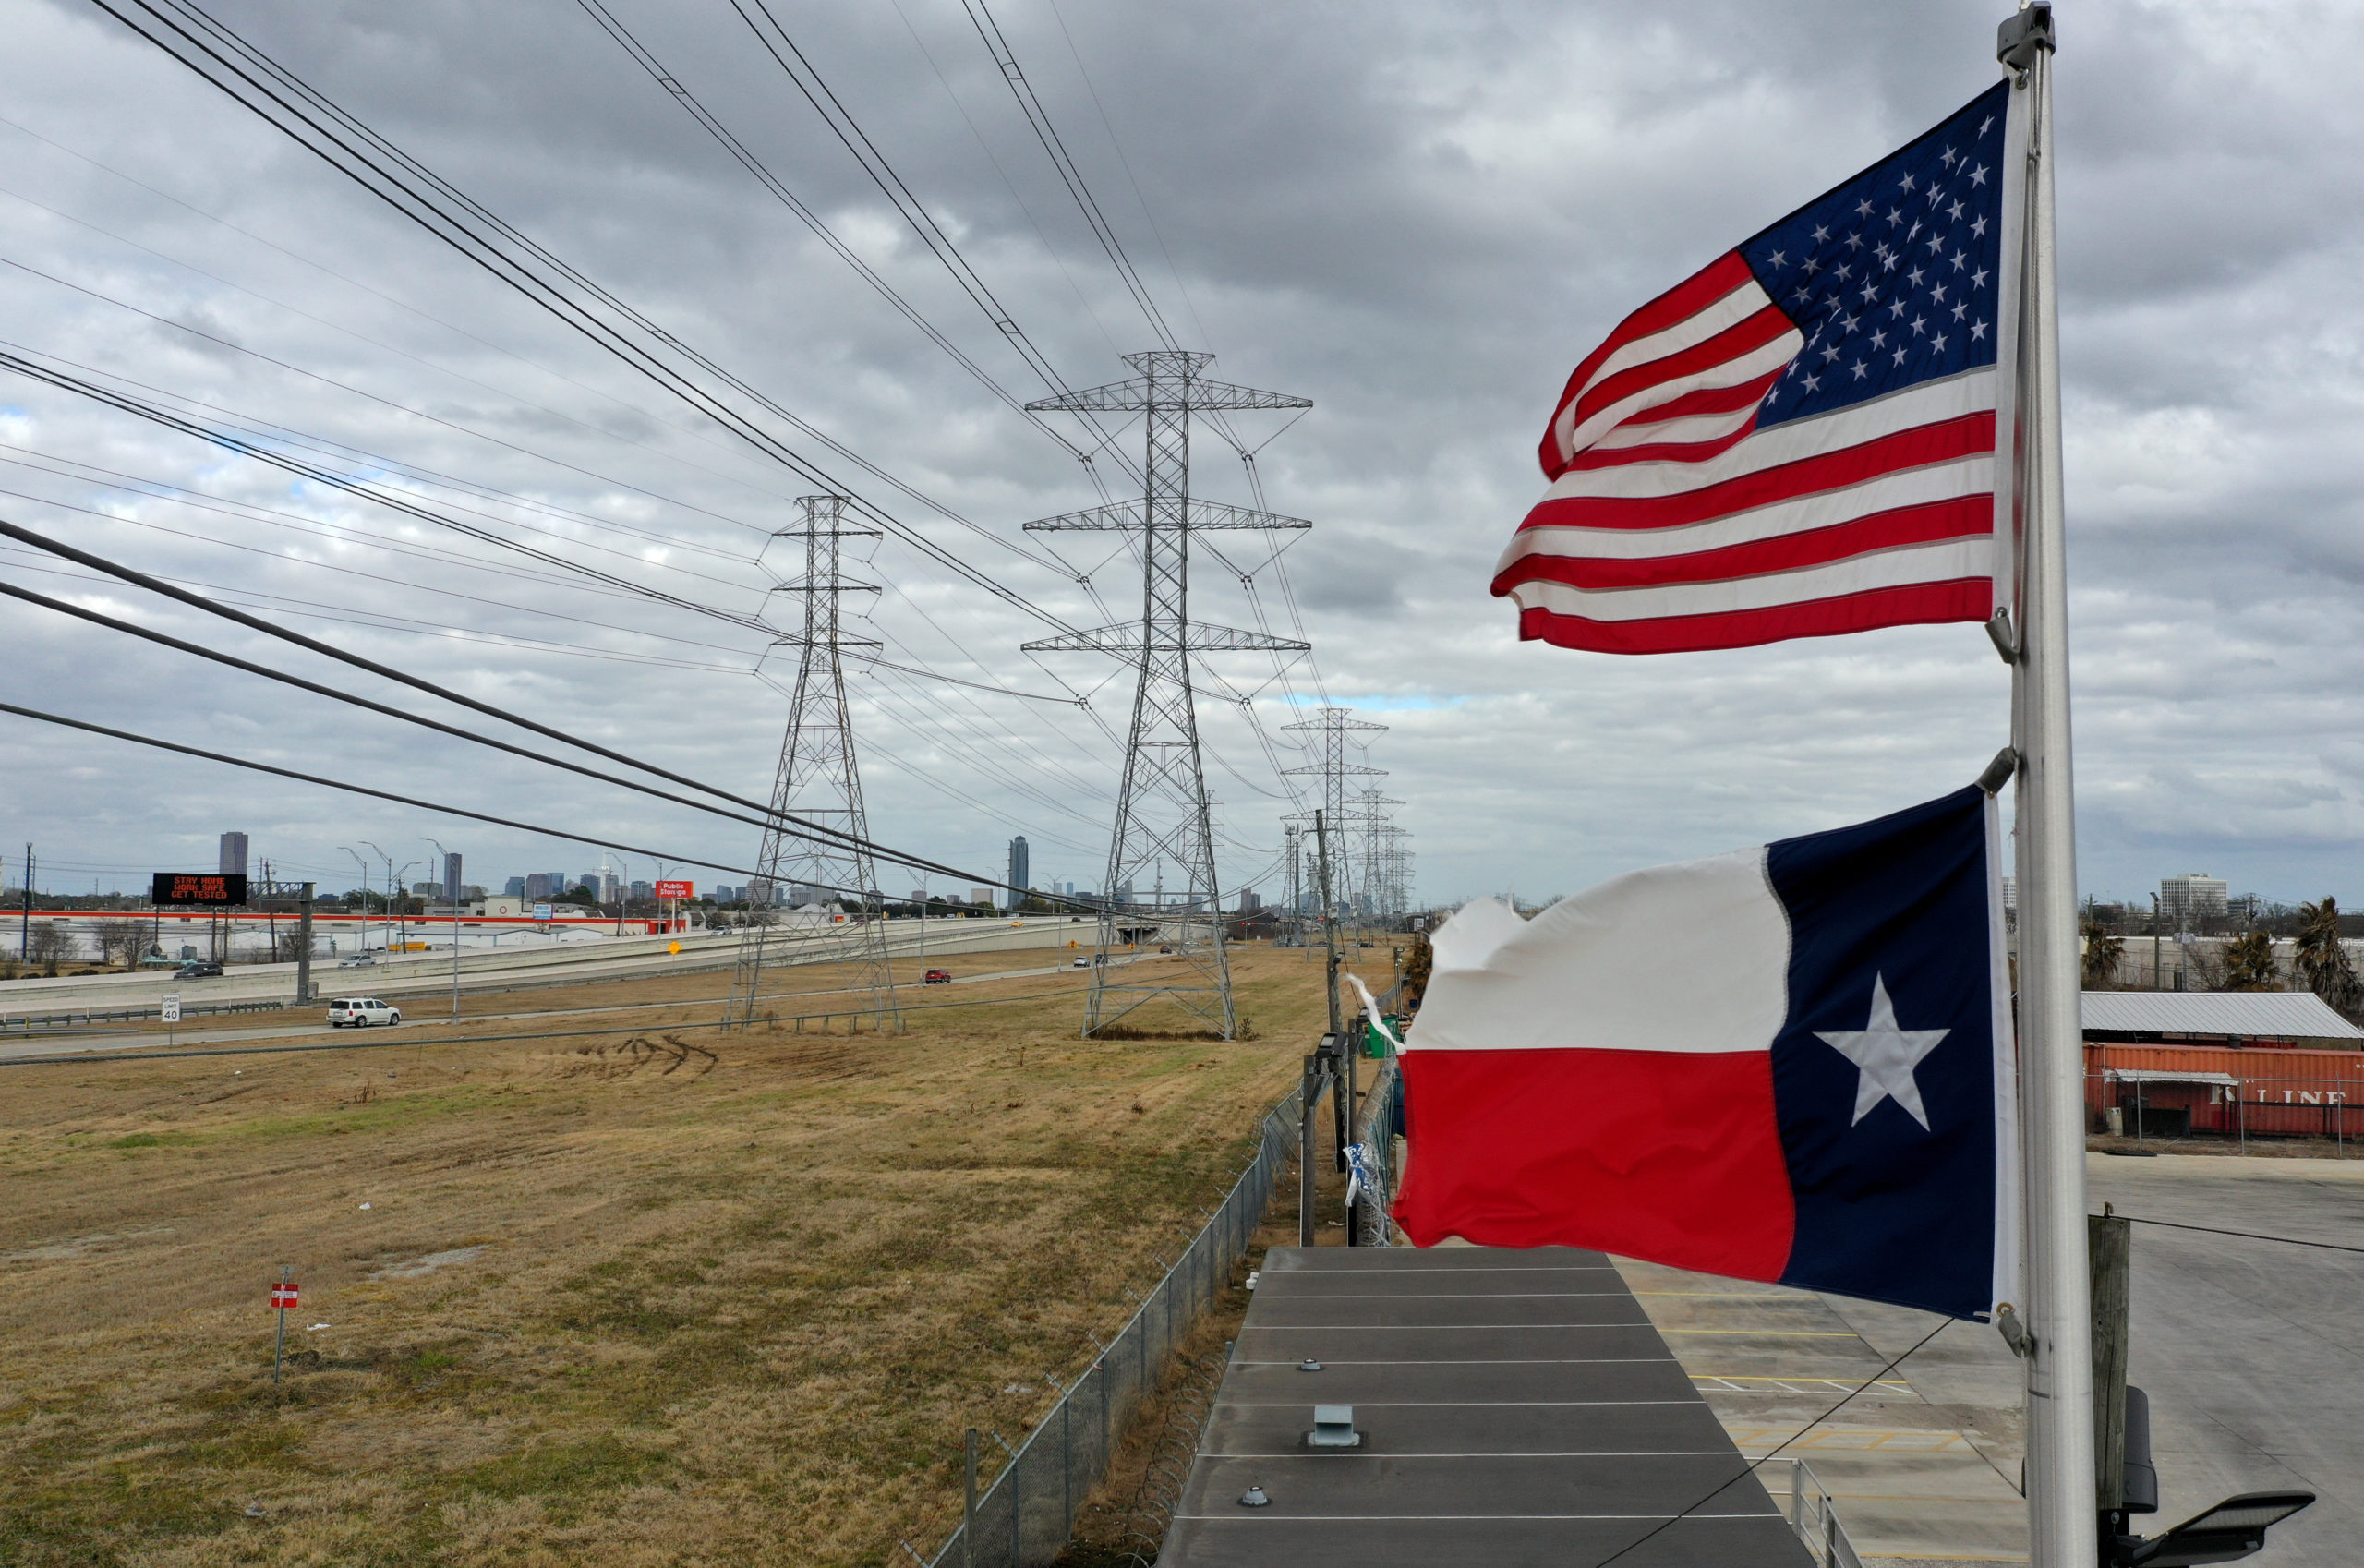 HOUSTON, TEXAS - FEBRUARY 21: The U.S. and Texas flags fly in front of high voltage transmission towers on February 21, 2021 in Houston, Texas. (Photo by Justin Sullivan/Getty Images)